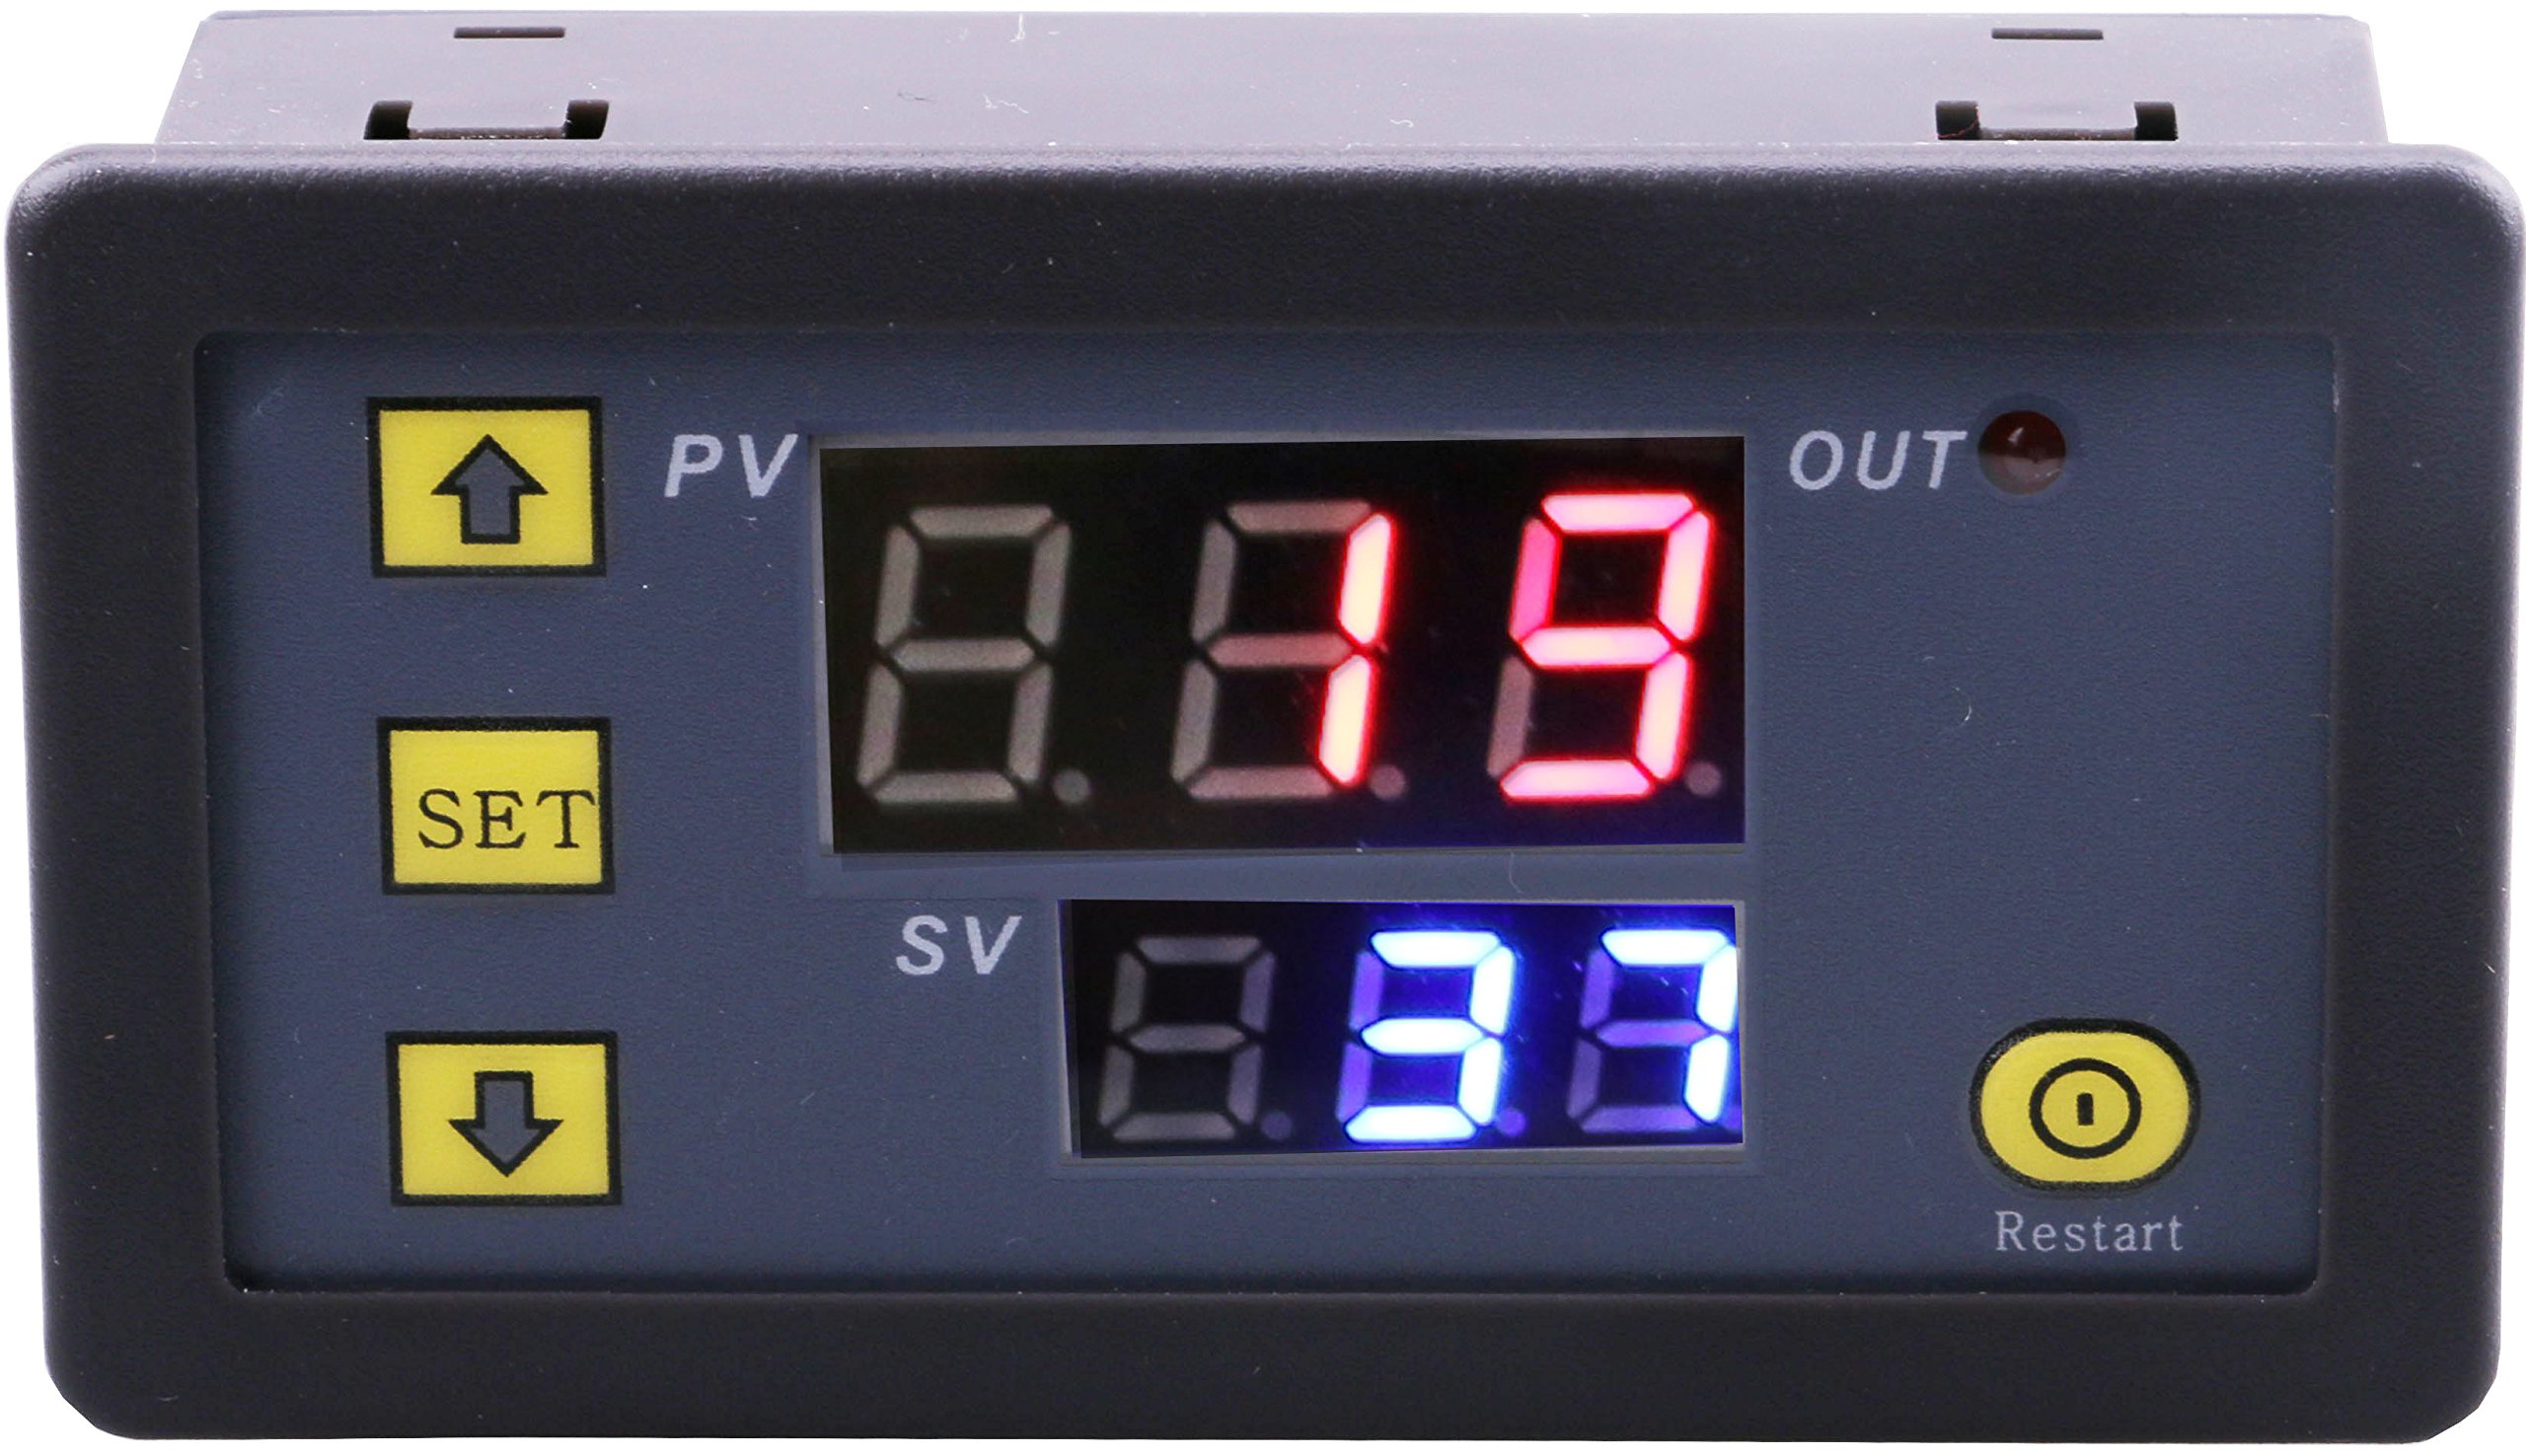 Yeeco Dual Digital Display Red/Blue LED DC 5V Timer Delay Relay Board 1500W 10A Max On Off Timing Relay Switch Module for Automotive Car Vehicle Cycle of time, Time Delay